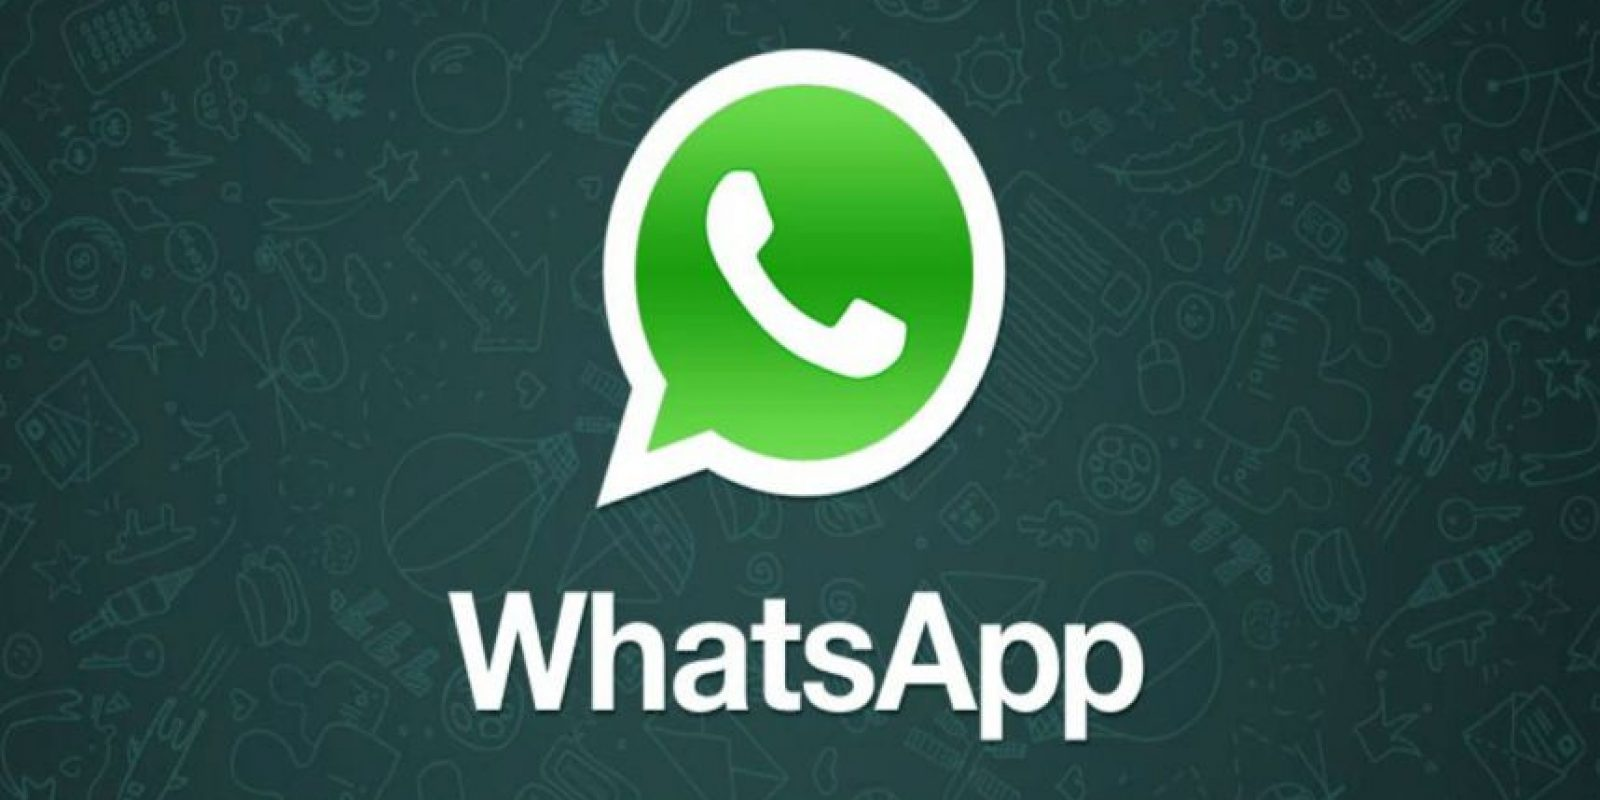 Recientemente WhatsApp anunció el encriptado end-to-end. Foto: WhatsApp